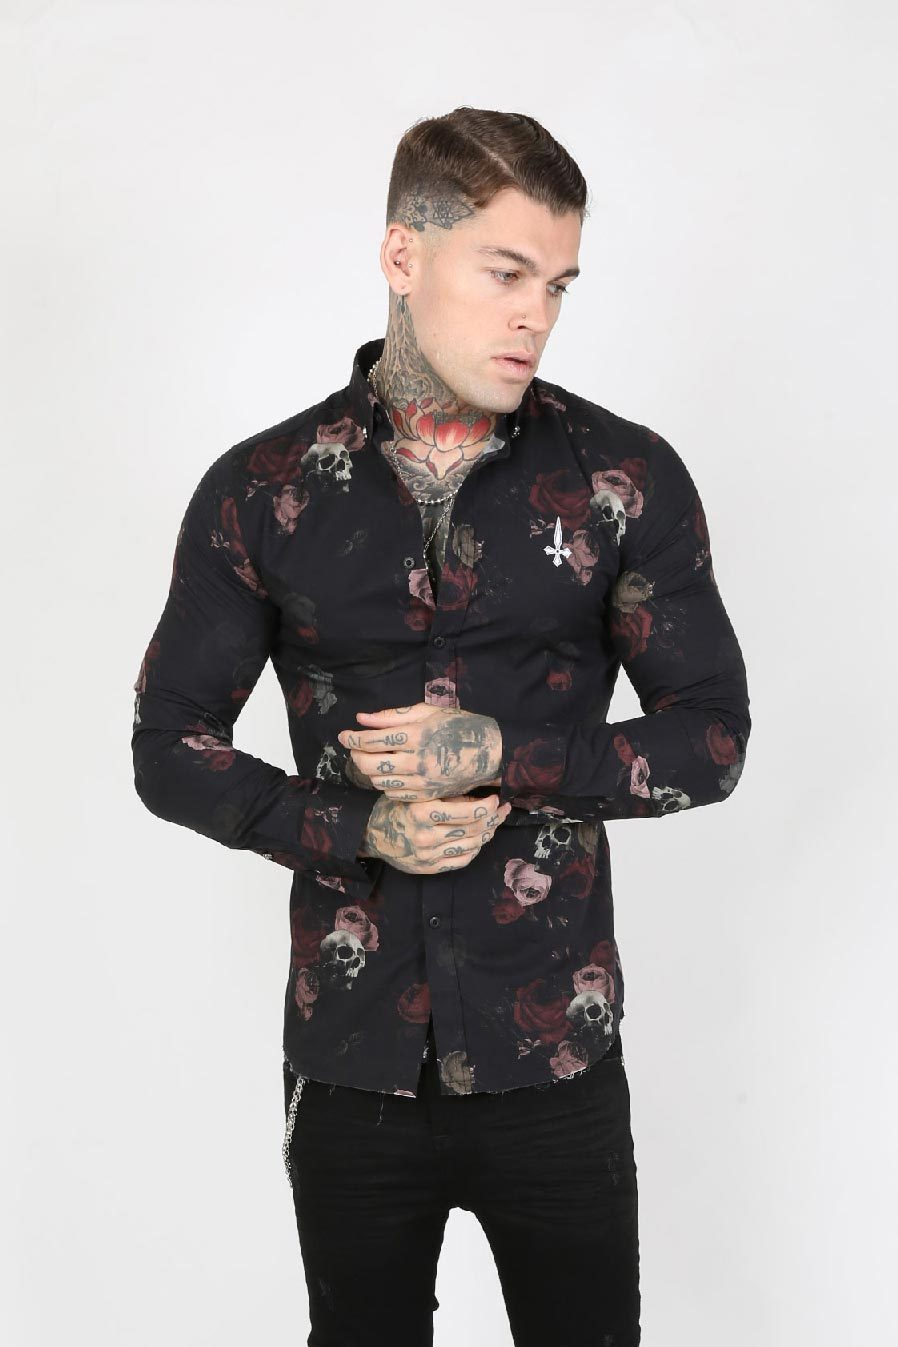 Judas Sinned Eve Skull Print Smart Men's Shirt - Black - Judas Sinned Clothing